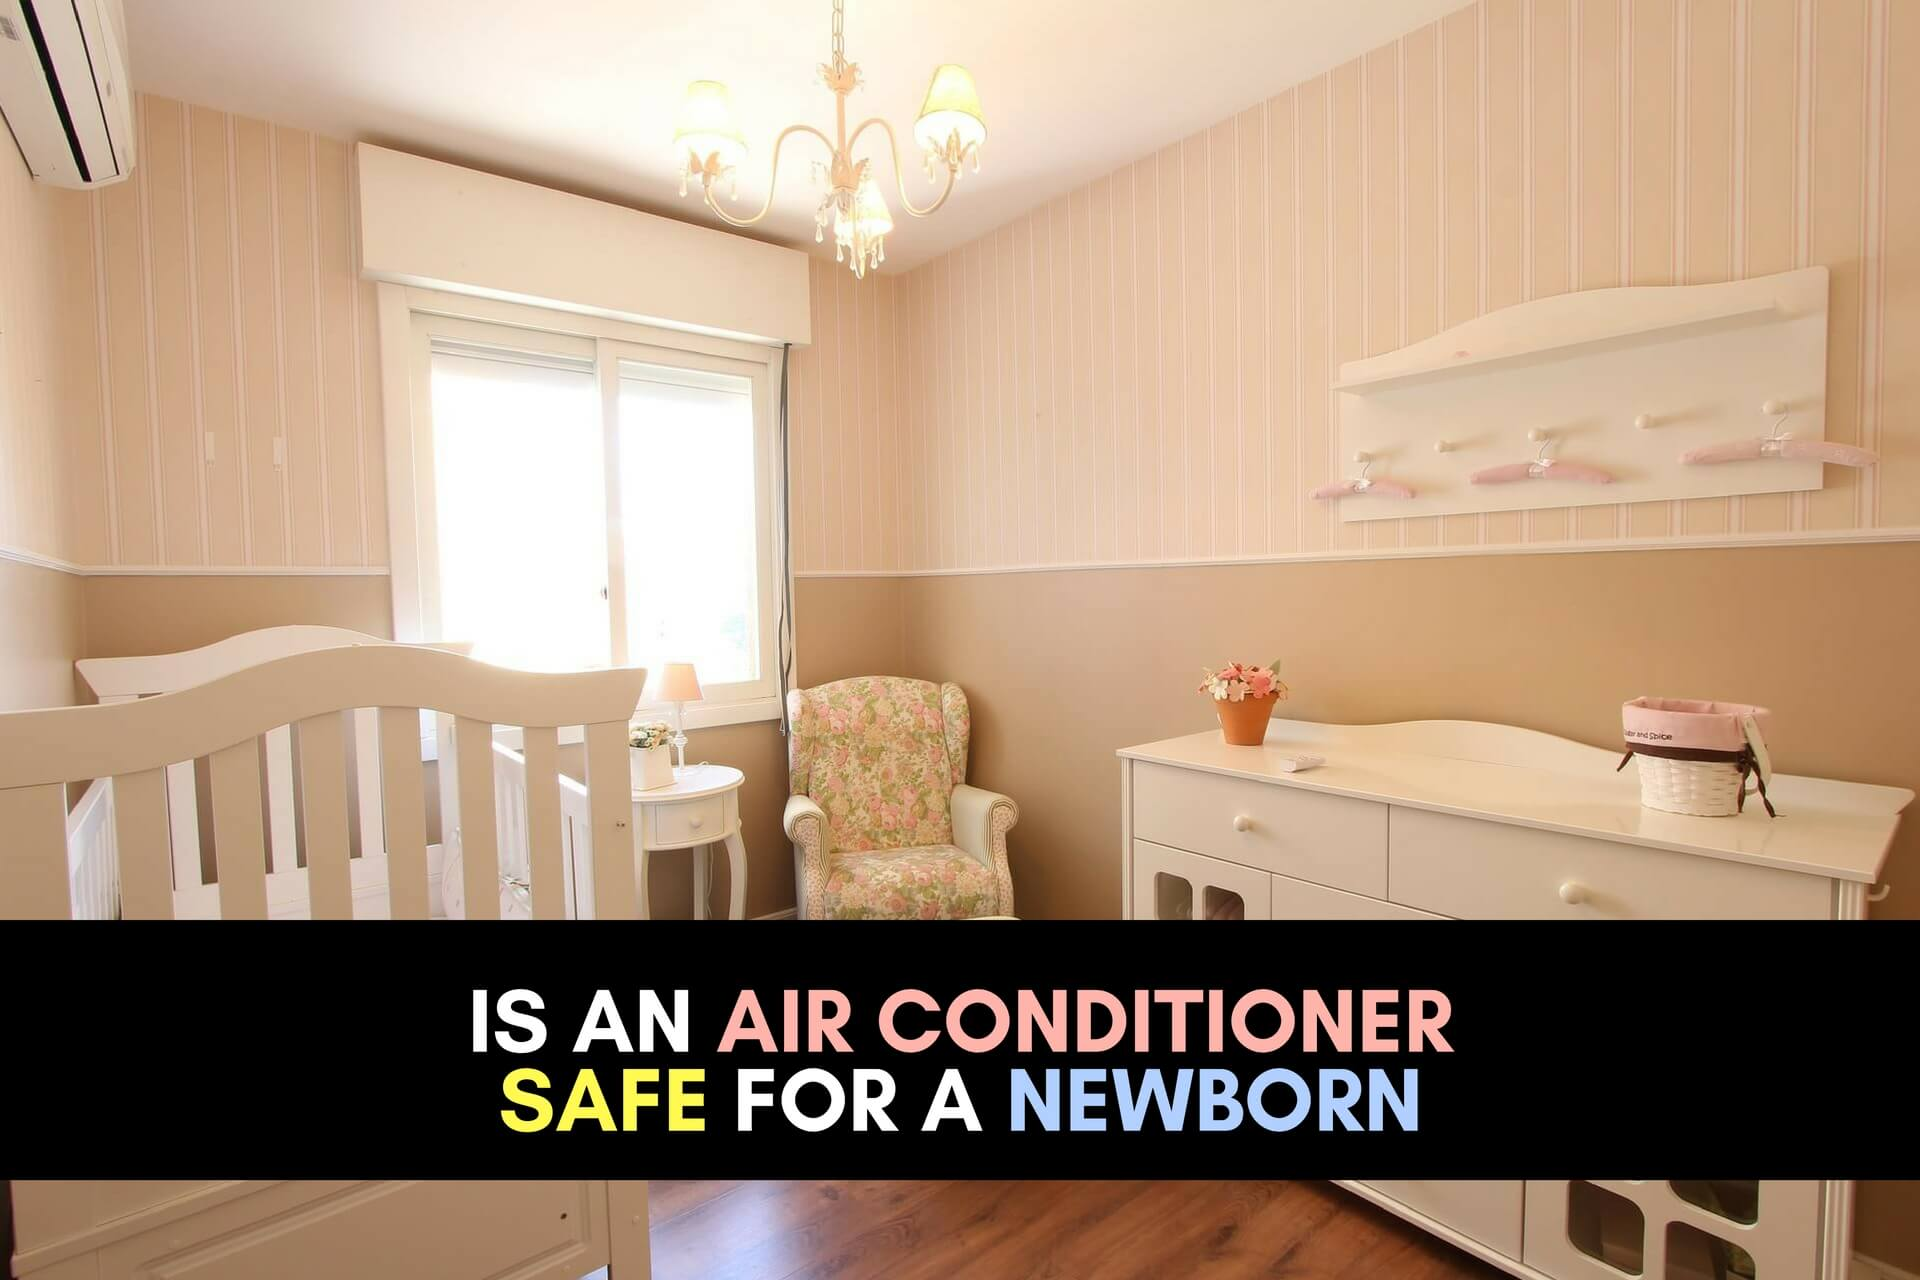 IS AN AIR CONDITIONER SAFE FOR A NEWBORN